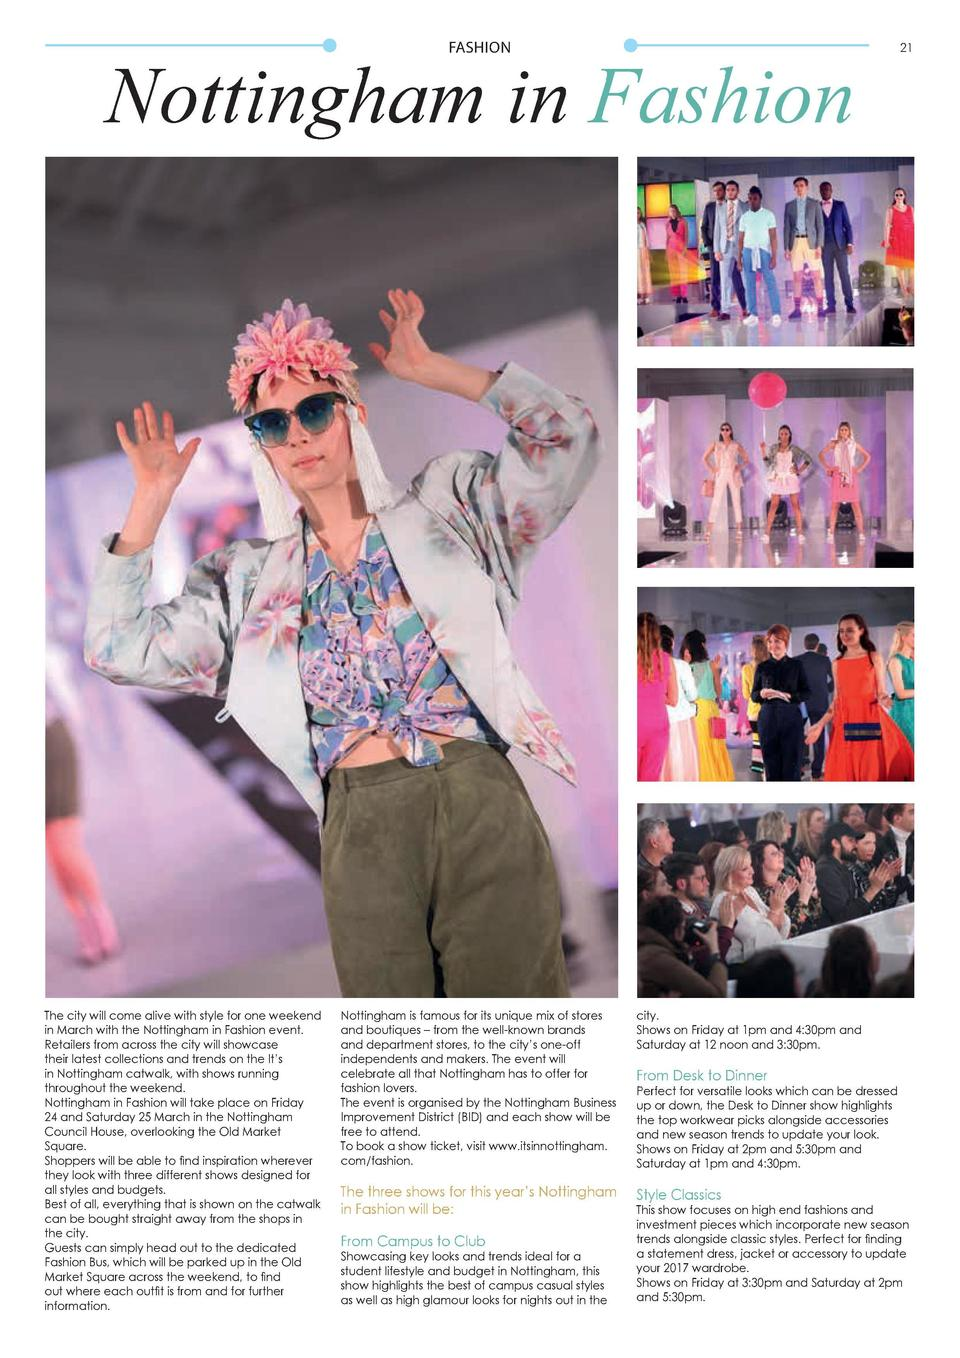 FASHION  Nottingham in Fashion  The city will come alive with style for one weekend in March with the Nottingham in Fashio...